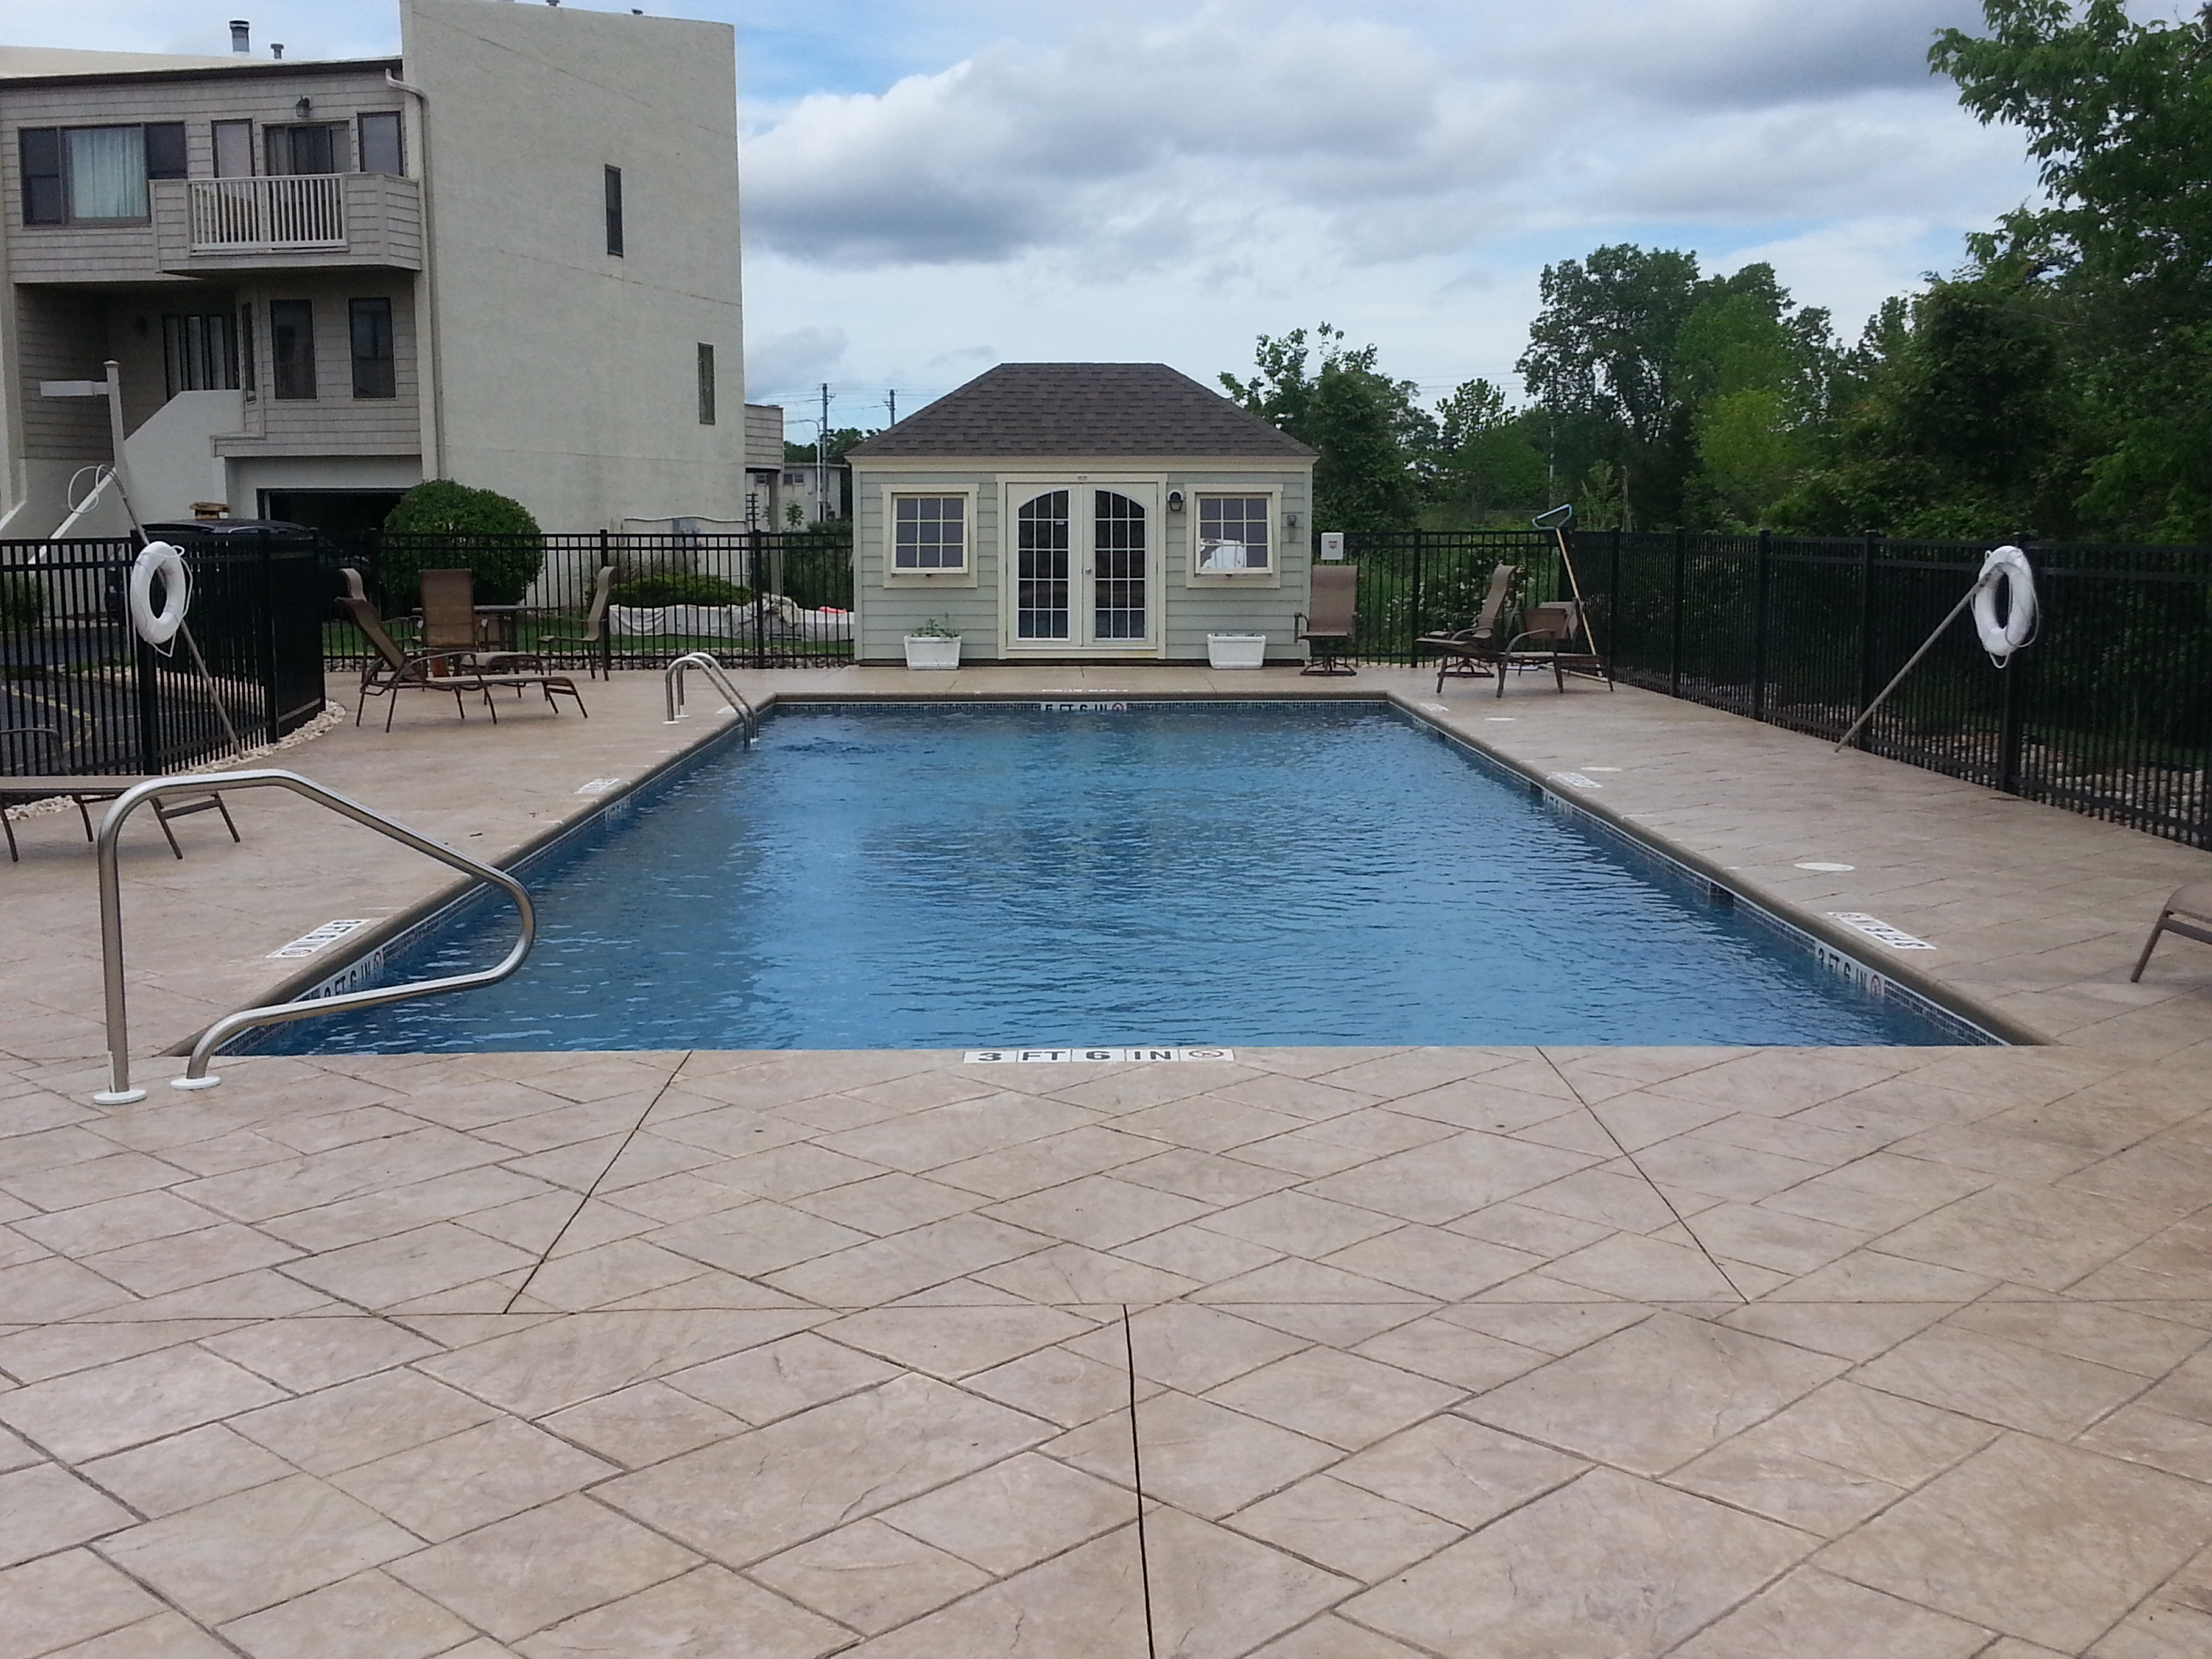 Among the amenties at Bridgewaters Townhouses is a community pool.